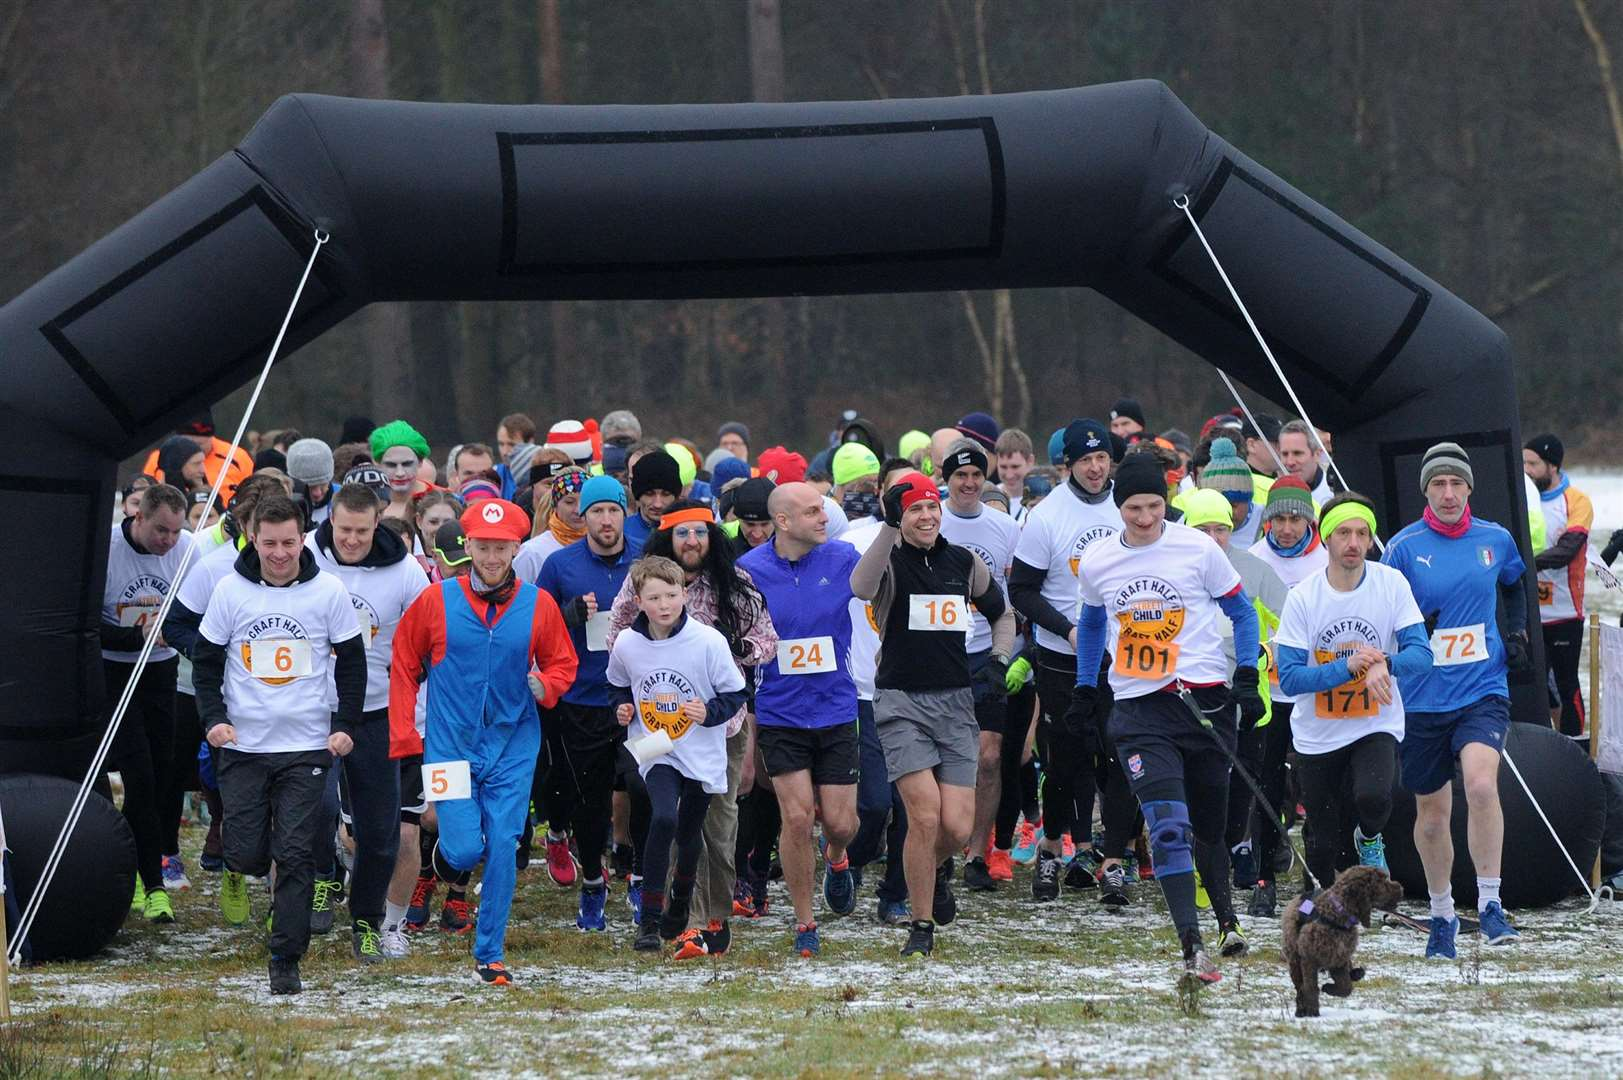 Around 150 runners joined in the Thetford Craft Half on Saturday, at High Lodge